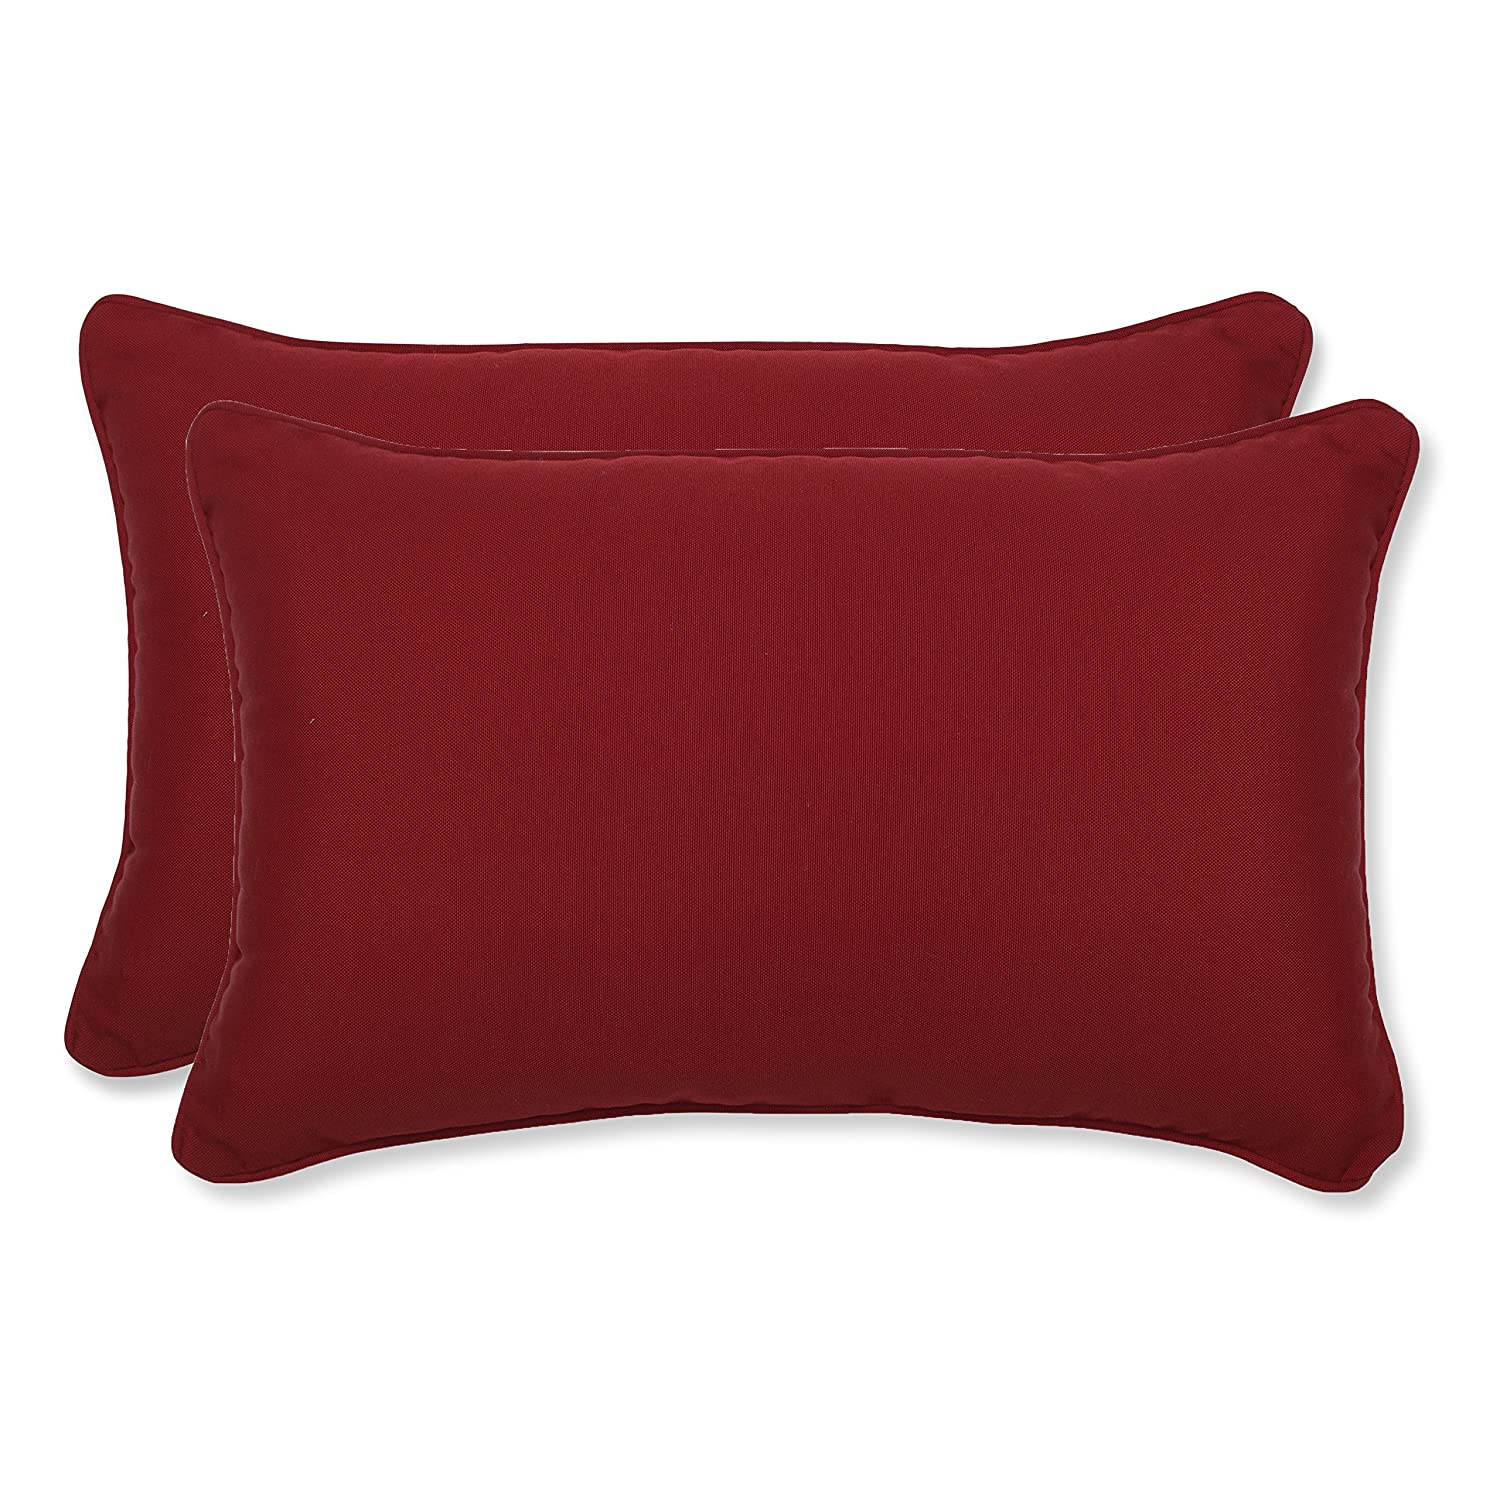 2add8e85655386 Amazon.com: Pillow Perfect Decorative Red Solid Toss Pillows, Rectangle,  2-Pack: Home & Kitchen